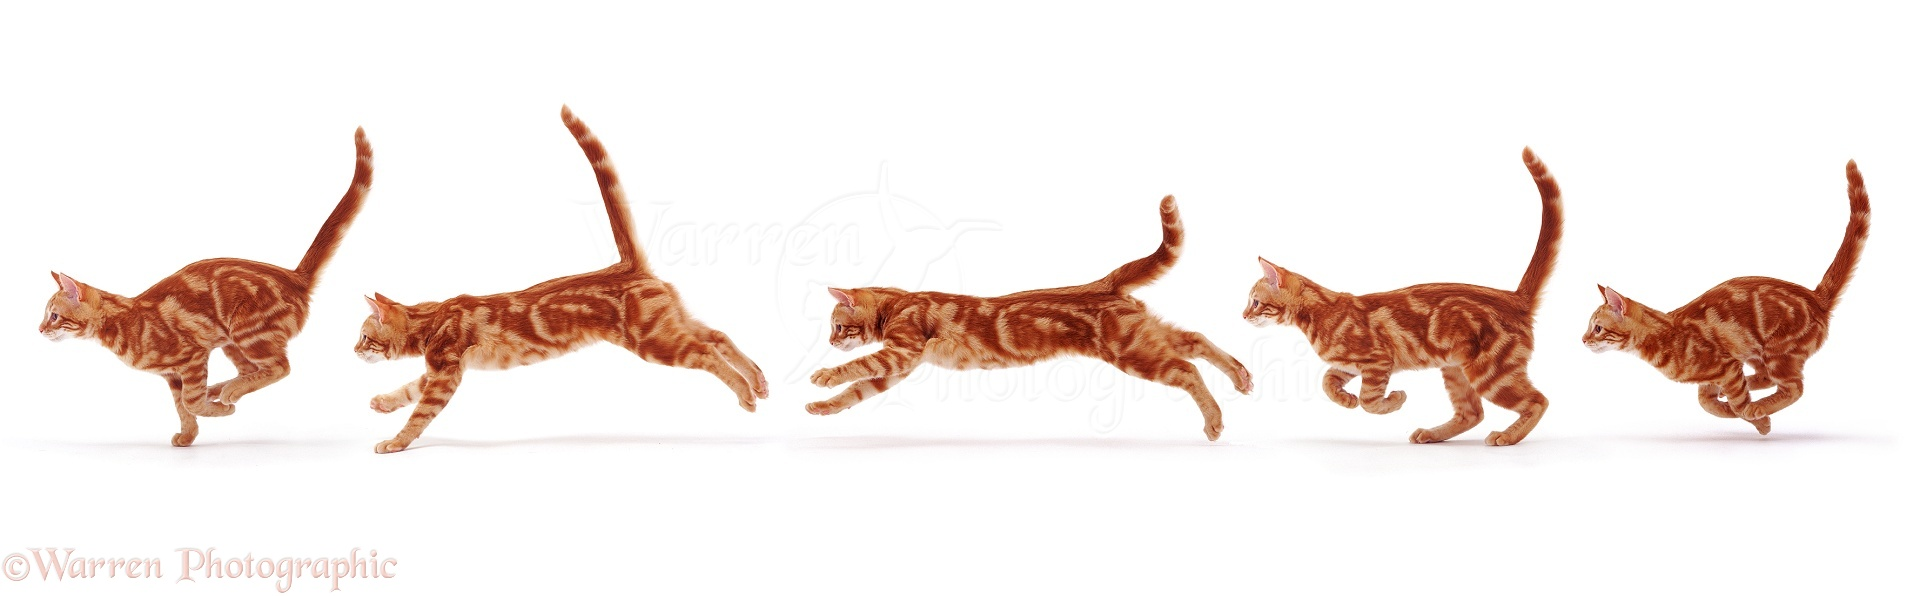 http://www.warrenphotographic.co.uk/photography/bigs/08119-Ginger-cat-running-white-background.jpg